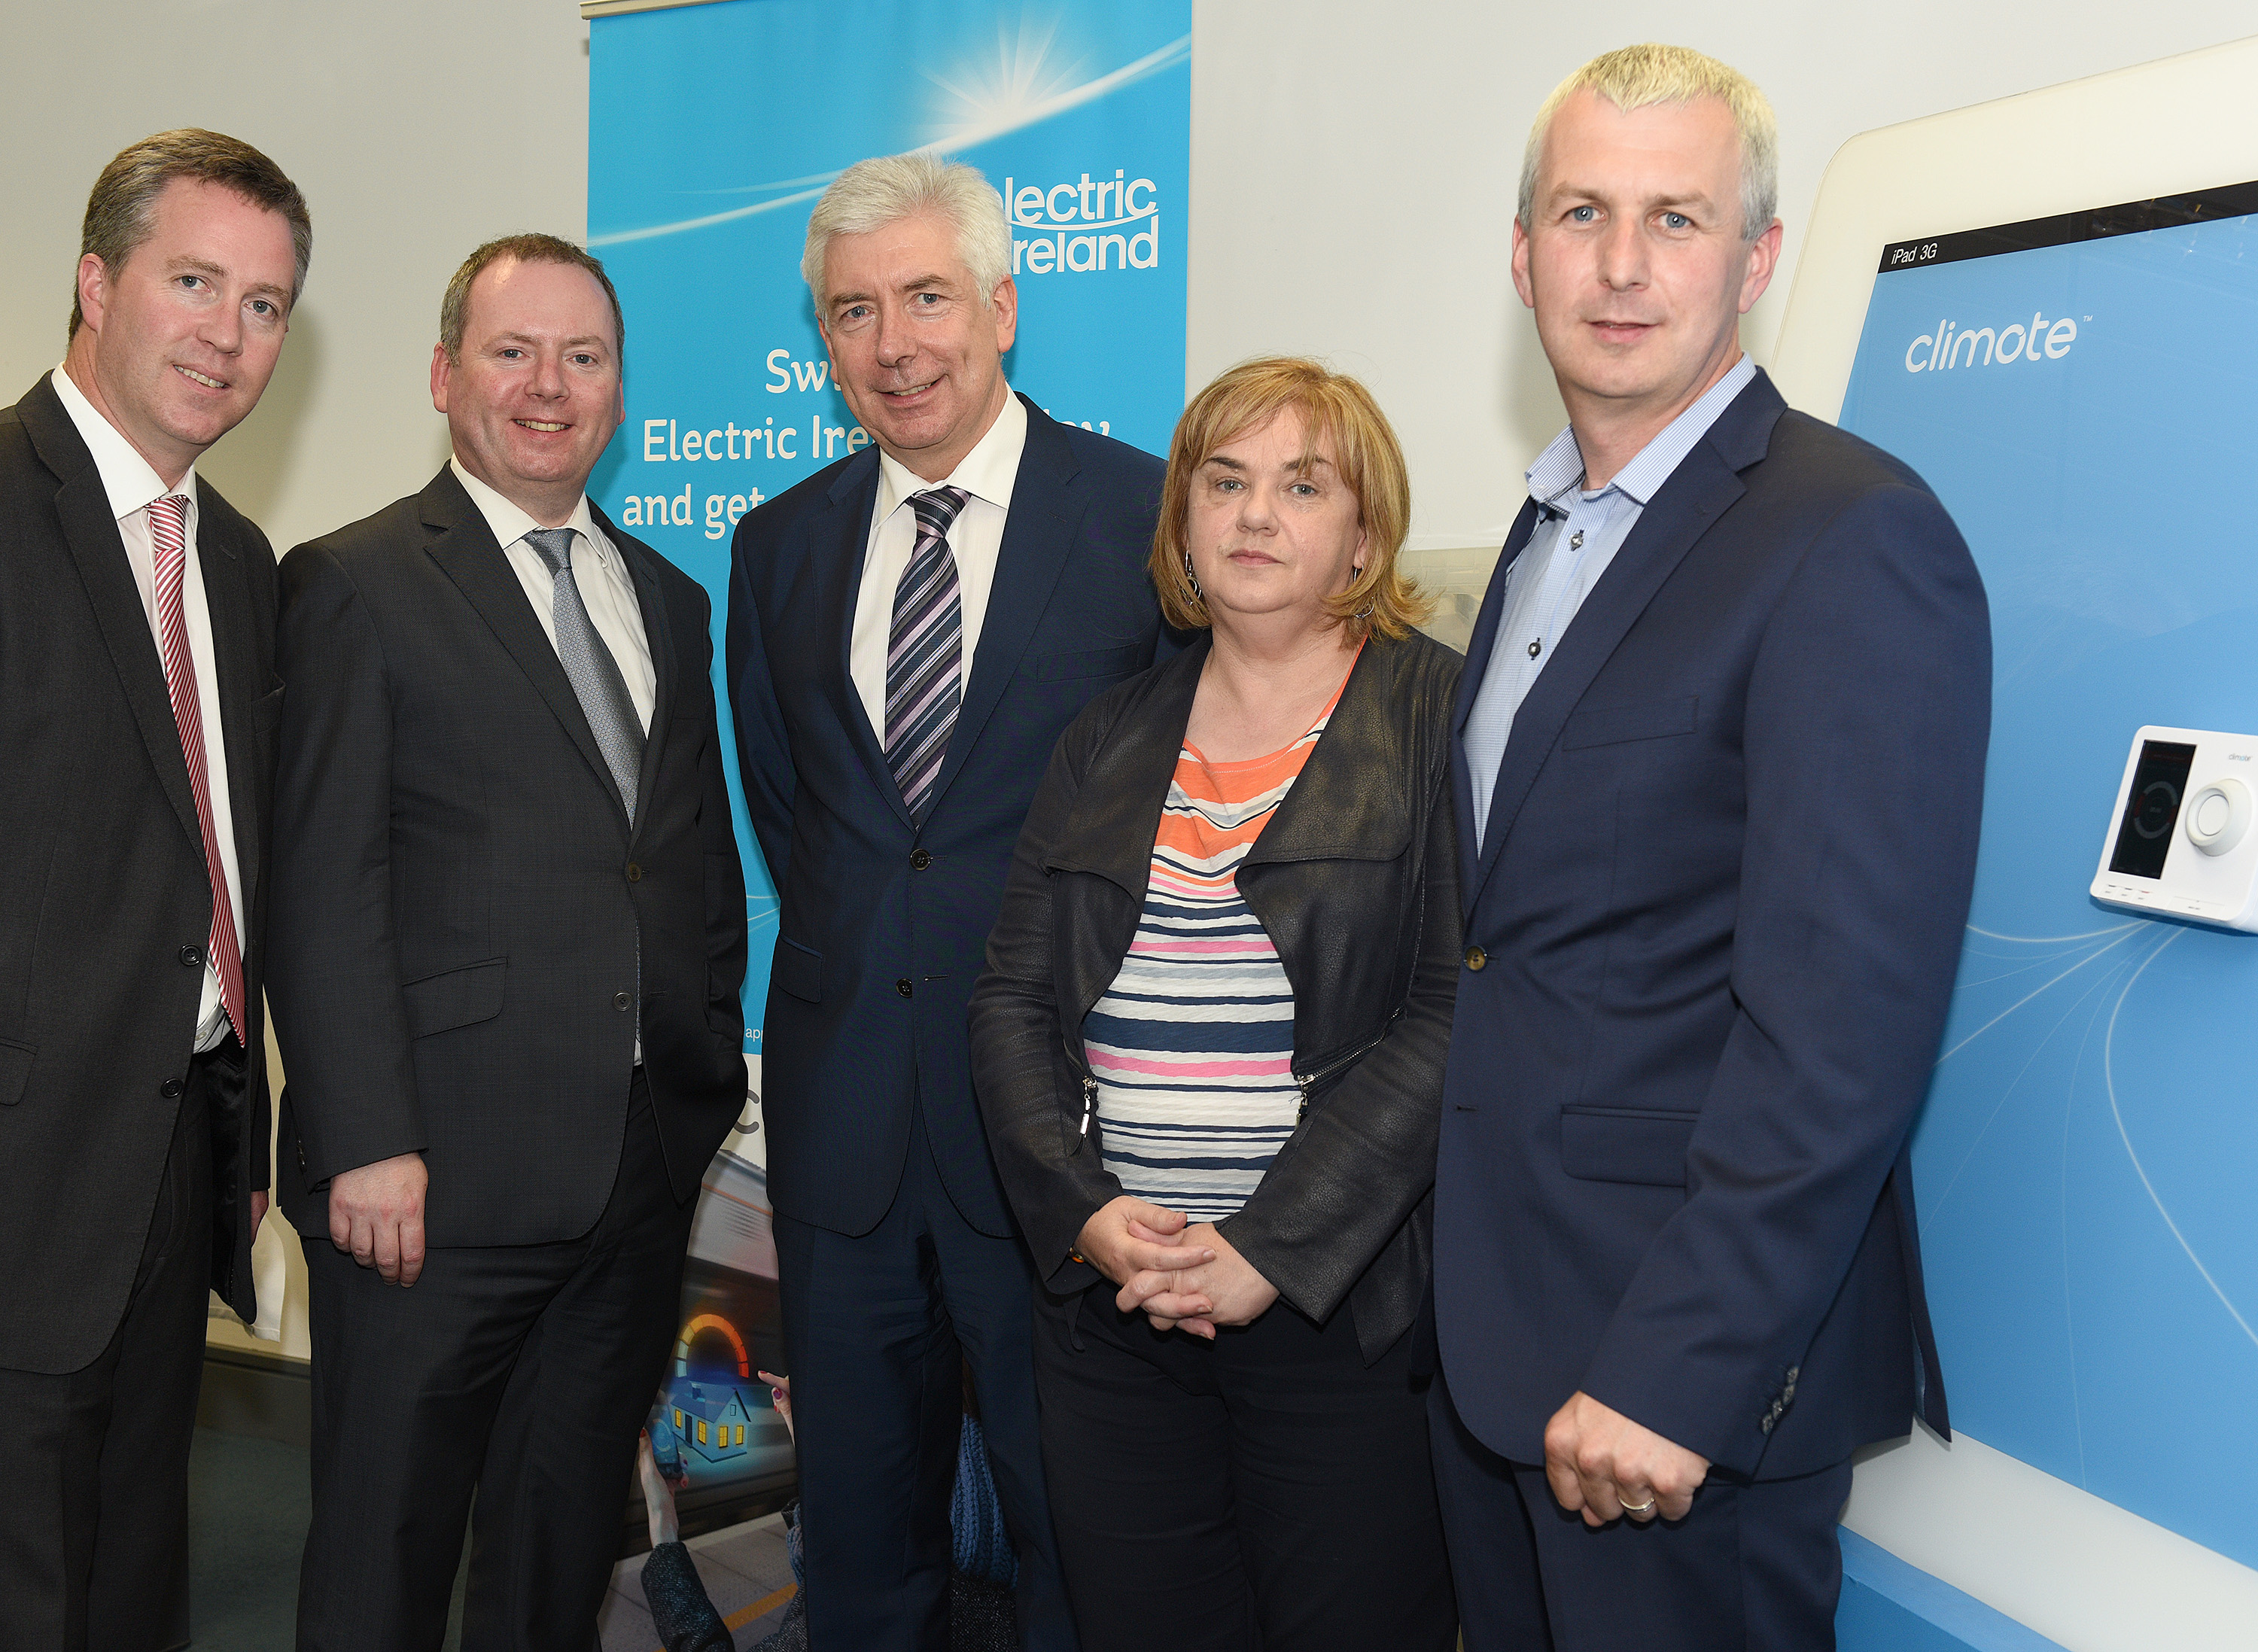 Paul Stapleton, General Manager, Electric Ireland, Brian Motherway, Chief Executive, SEAI, Minister for Communications, Energy and Natural Resources Alex White, Joan Martin, CEO, Louth County Council, Derek Roddy, CEO, climote